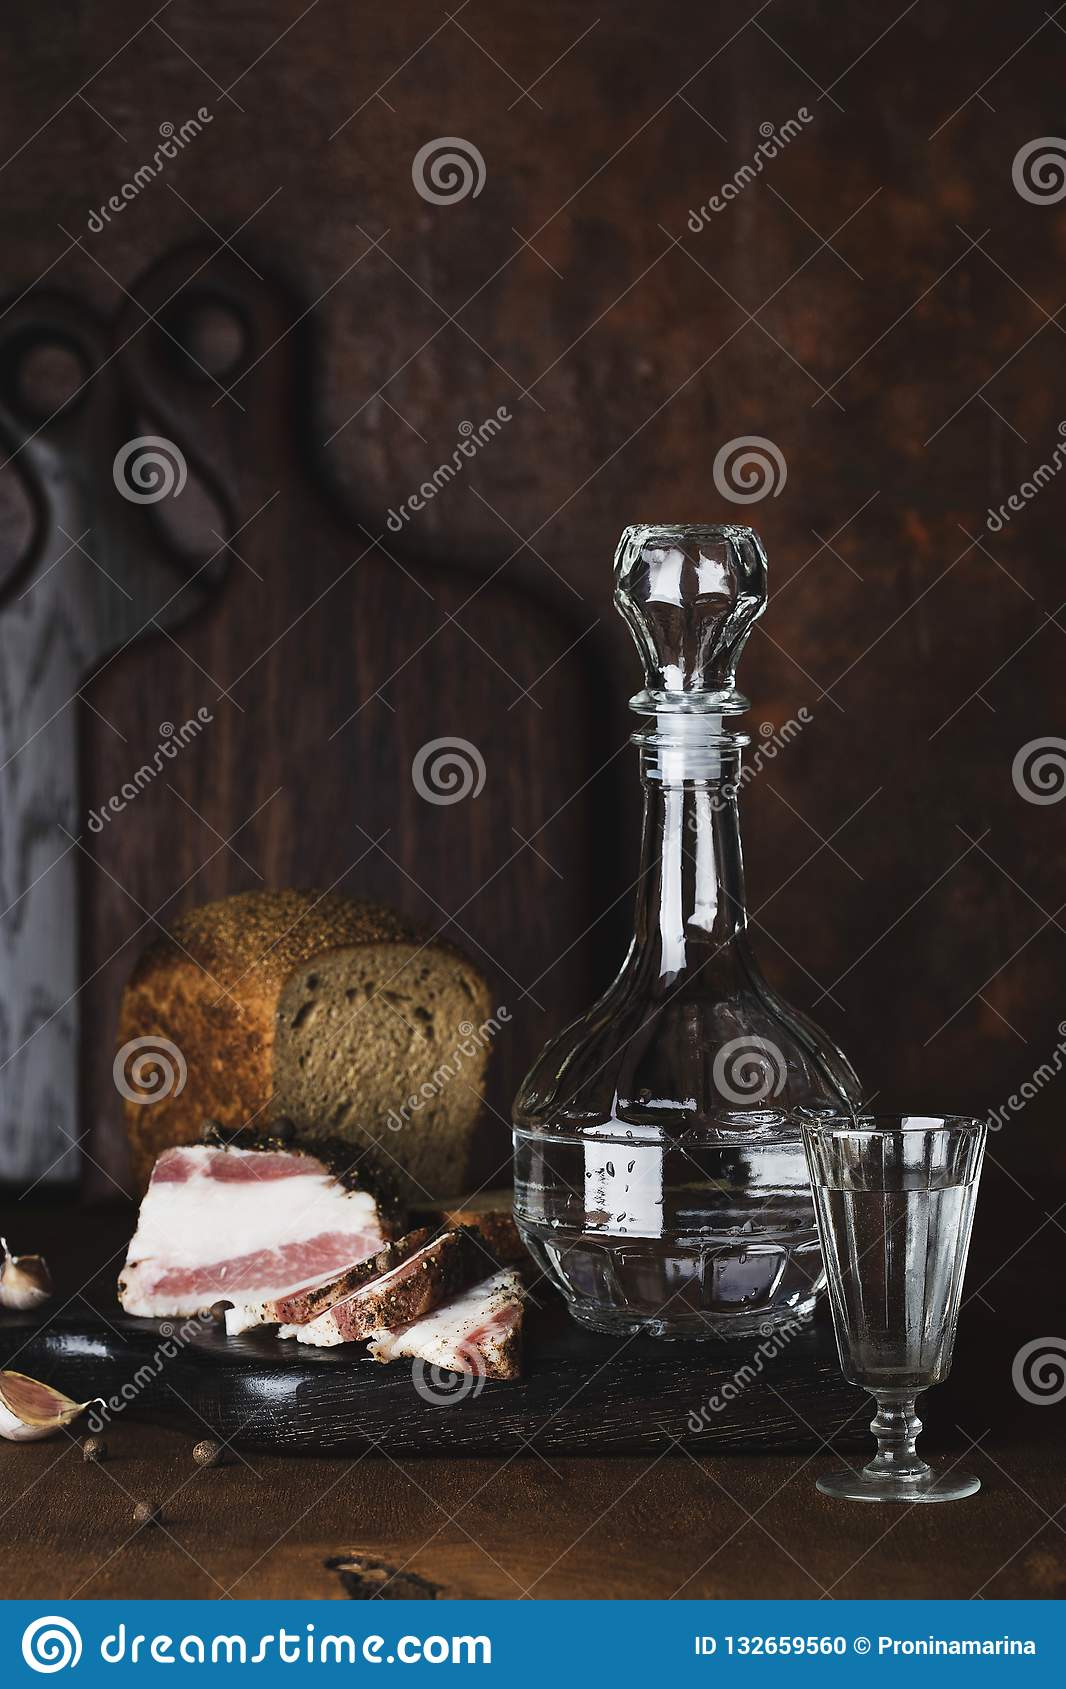 Still life with vodka, bread and lard